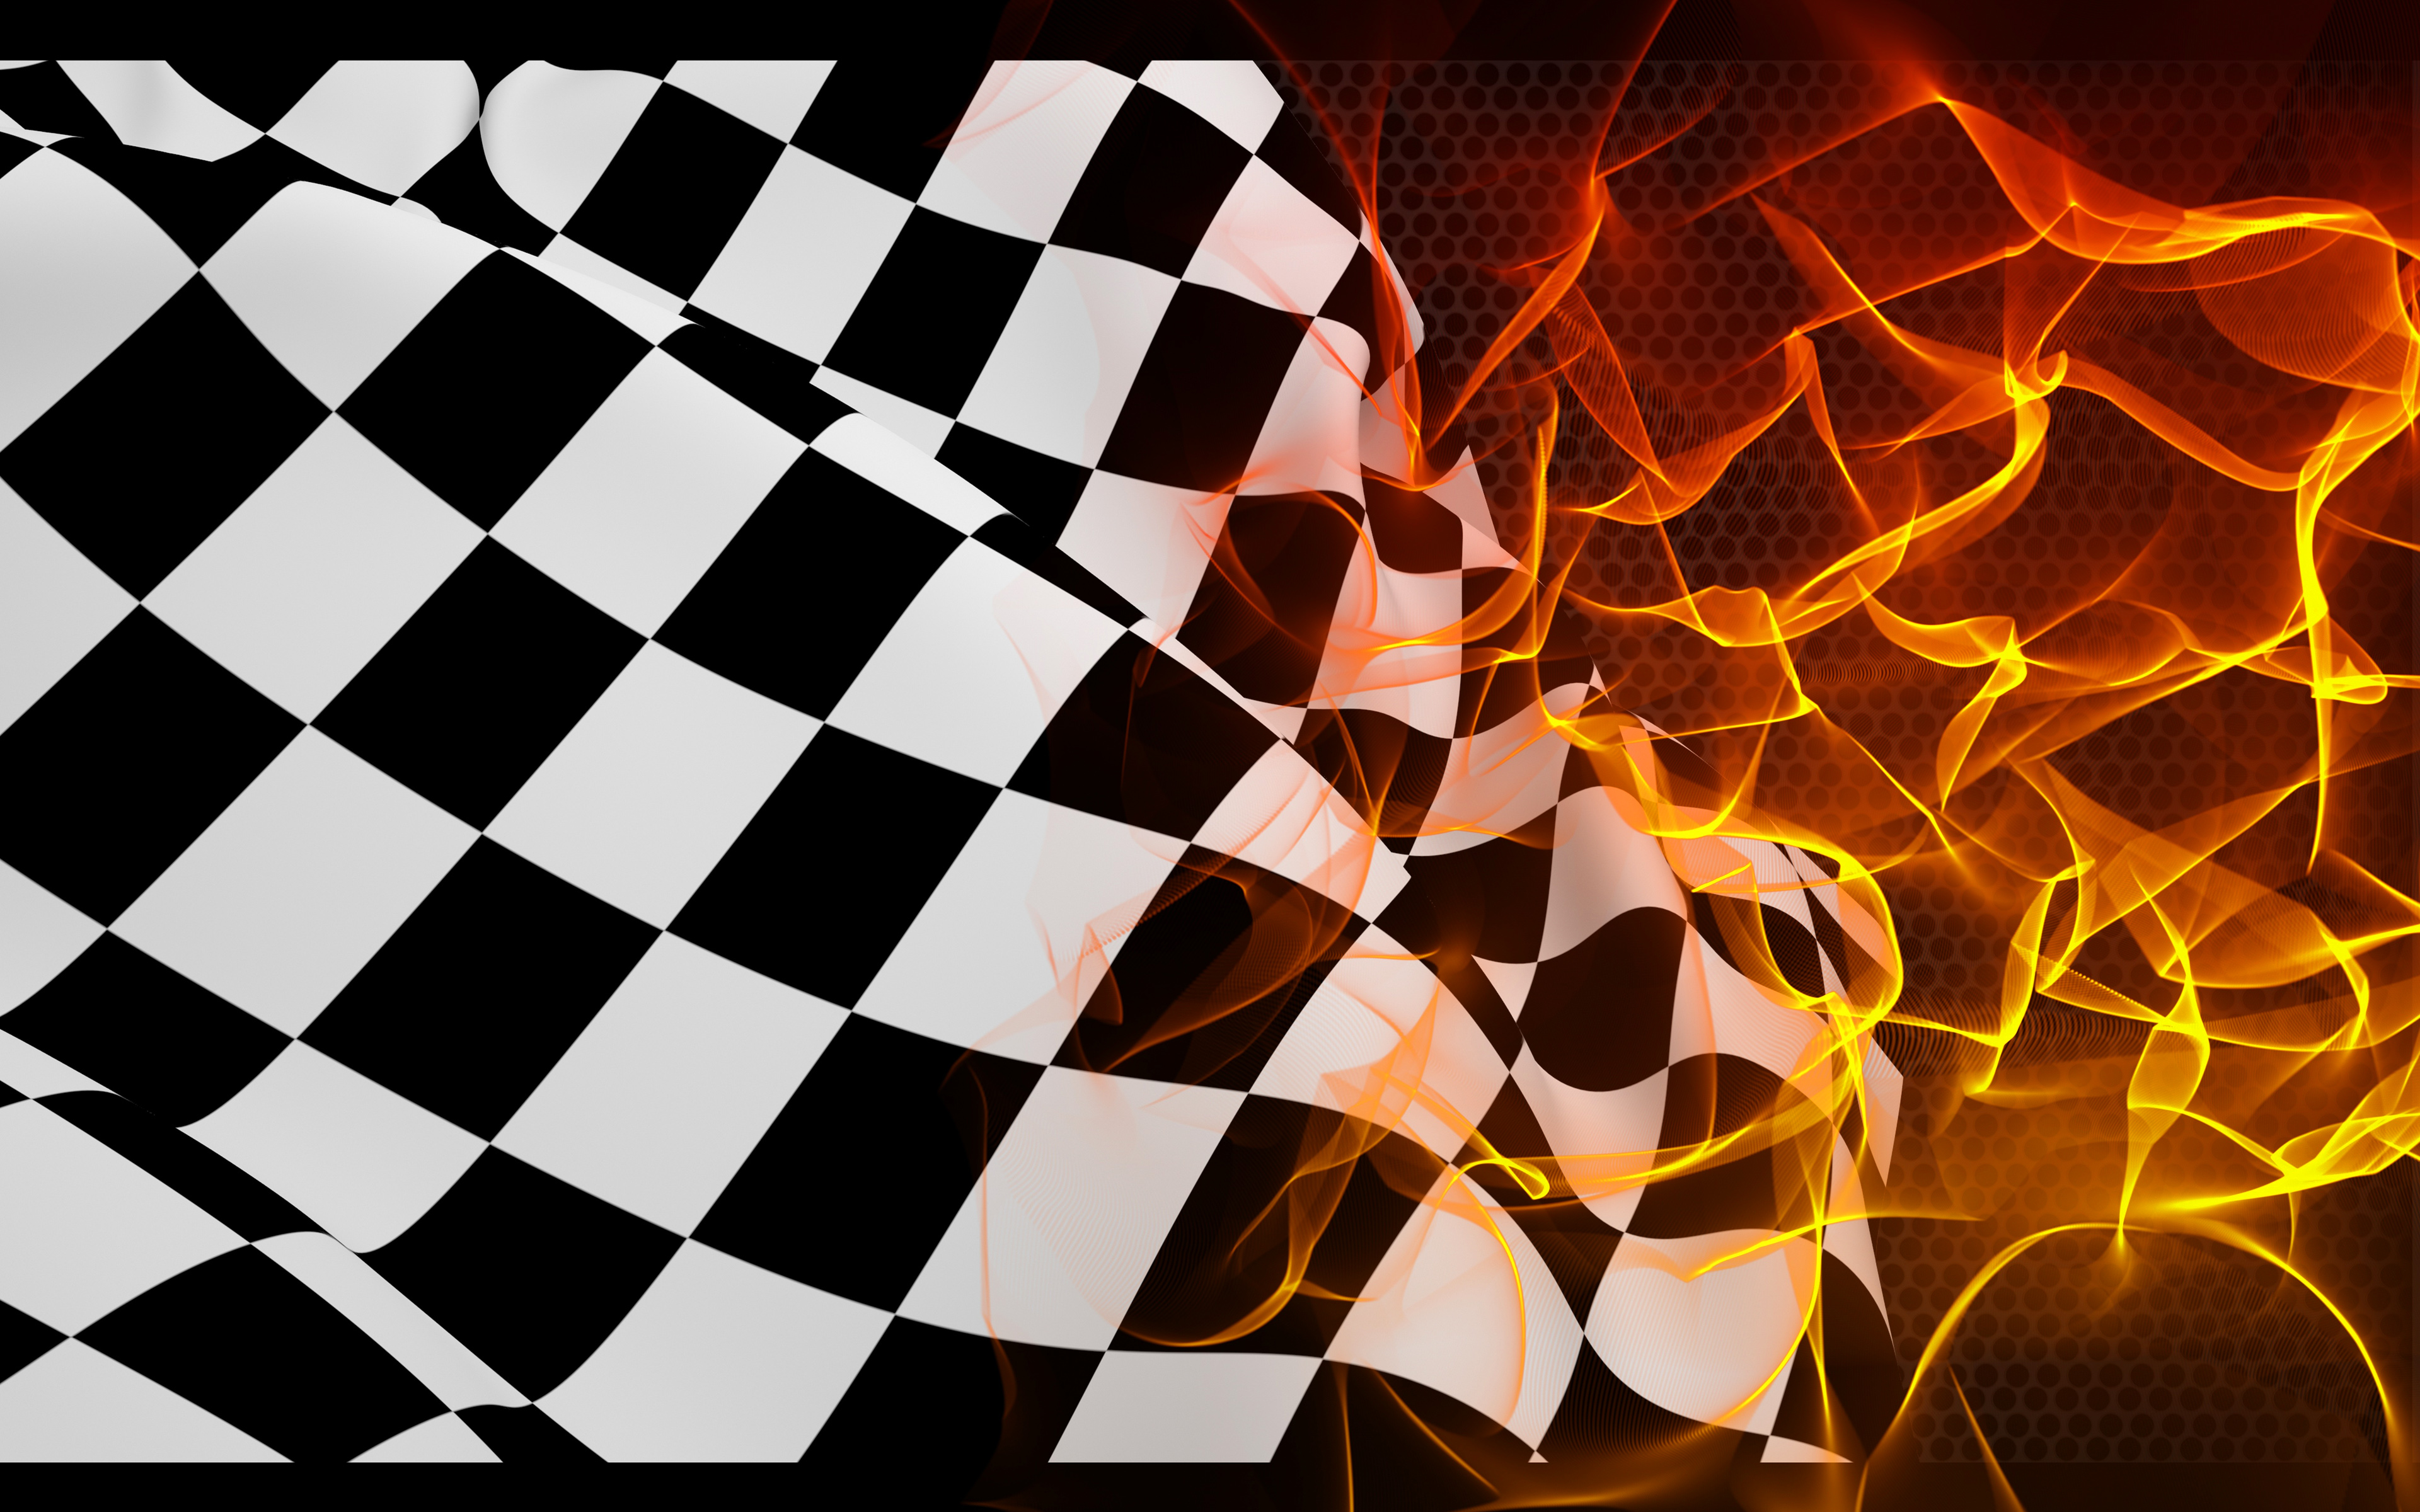 Download wallpapers checkered flag, finish, fire, flame ...